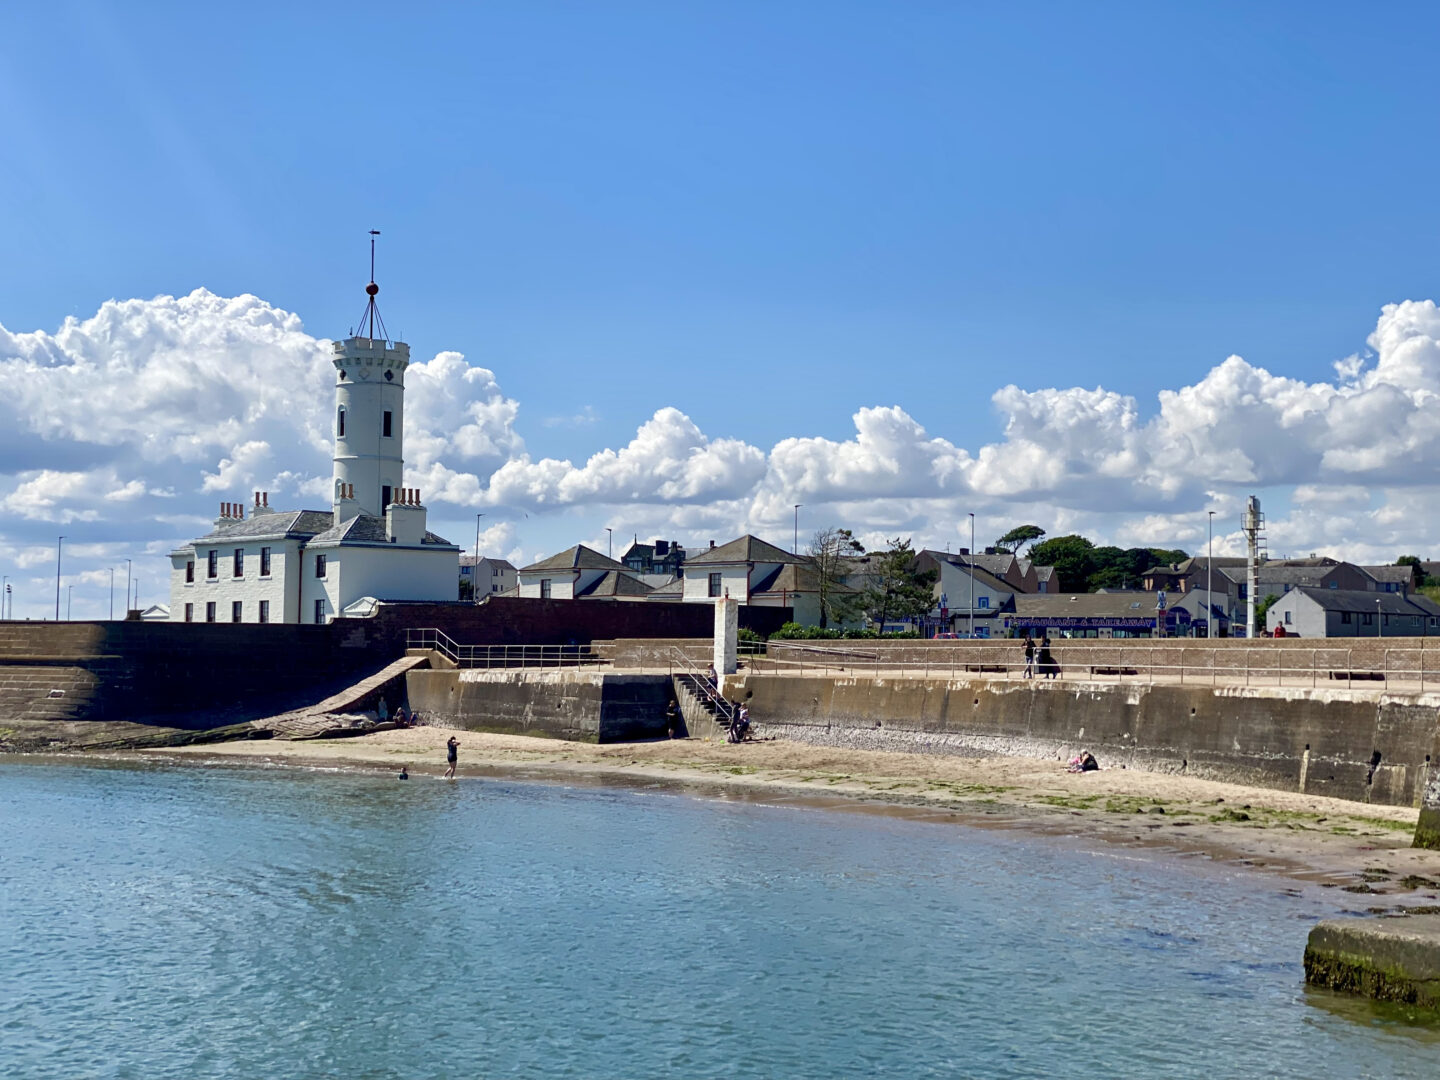 The signal tower and shoreline at Arbroath Harbour